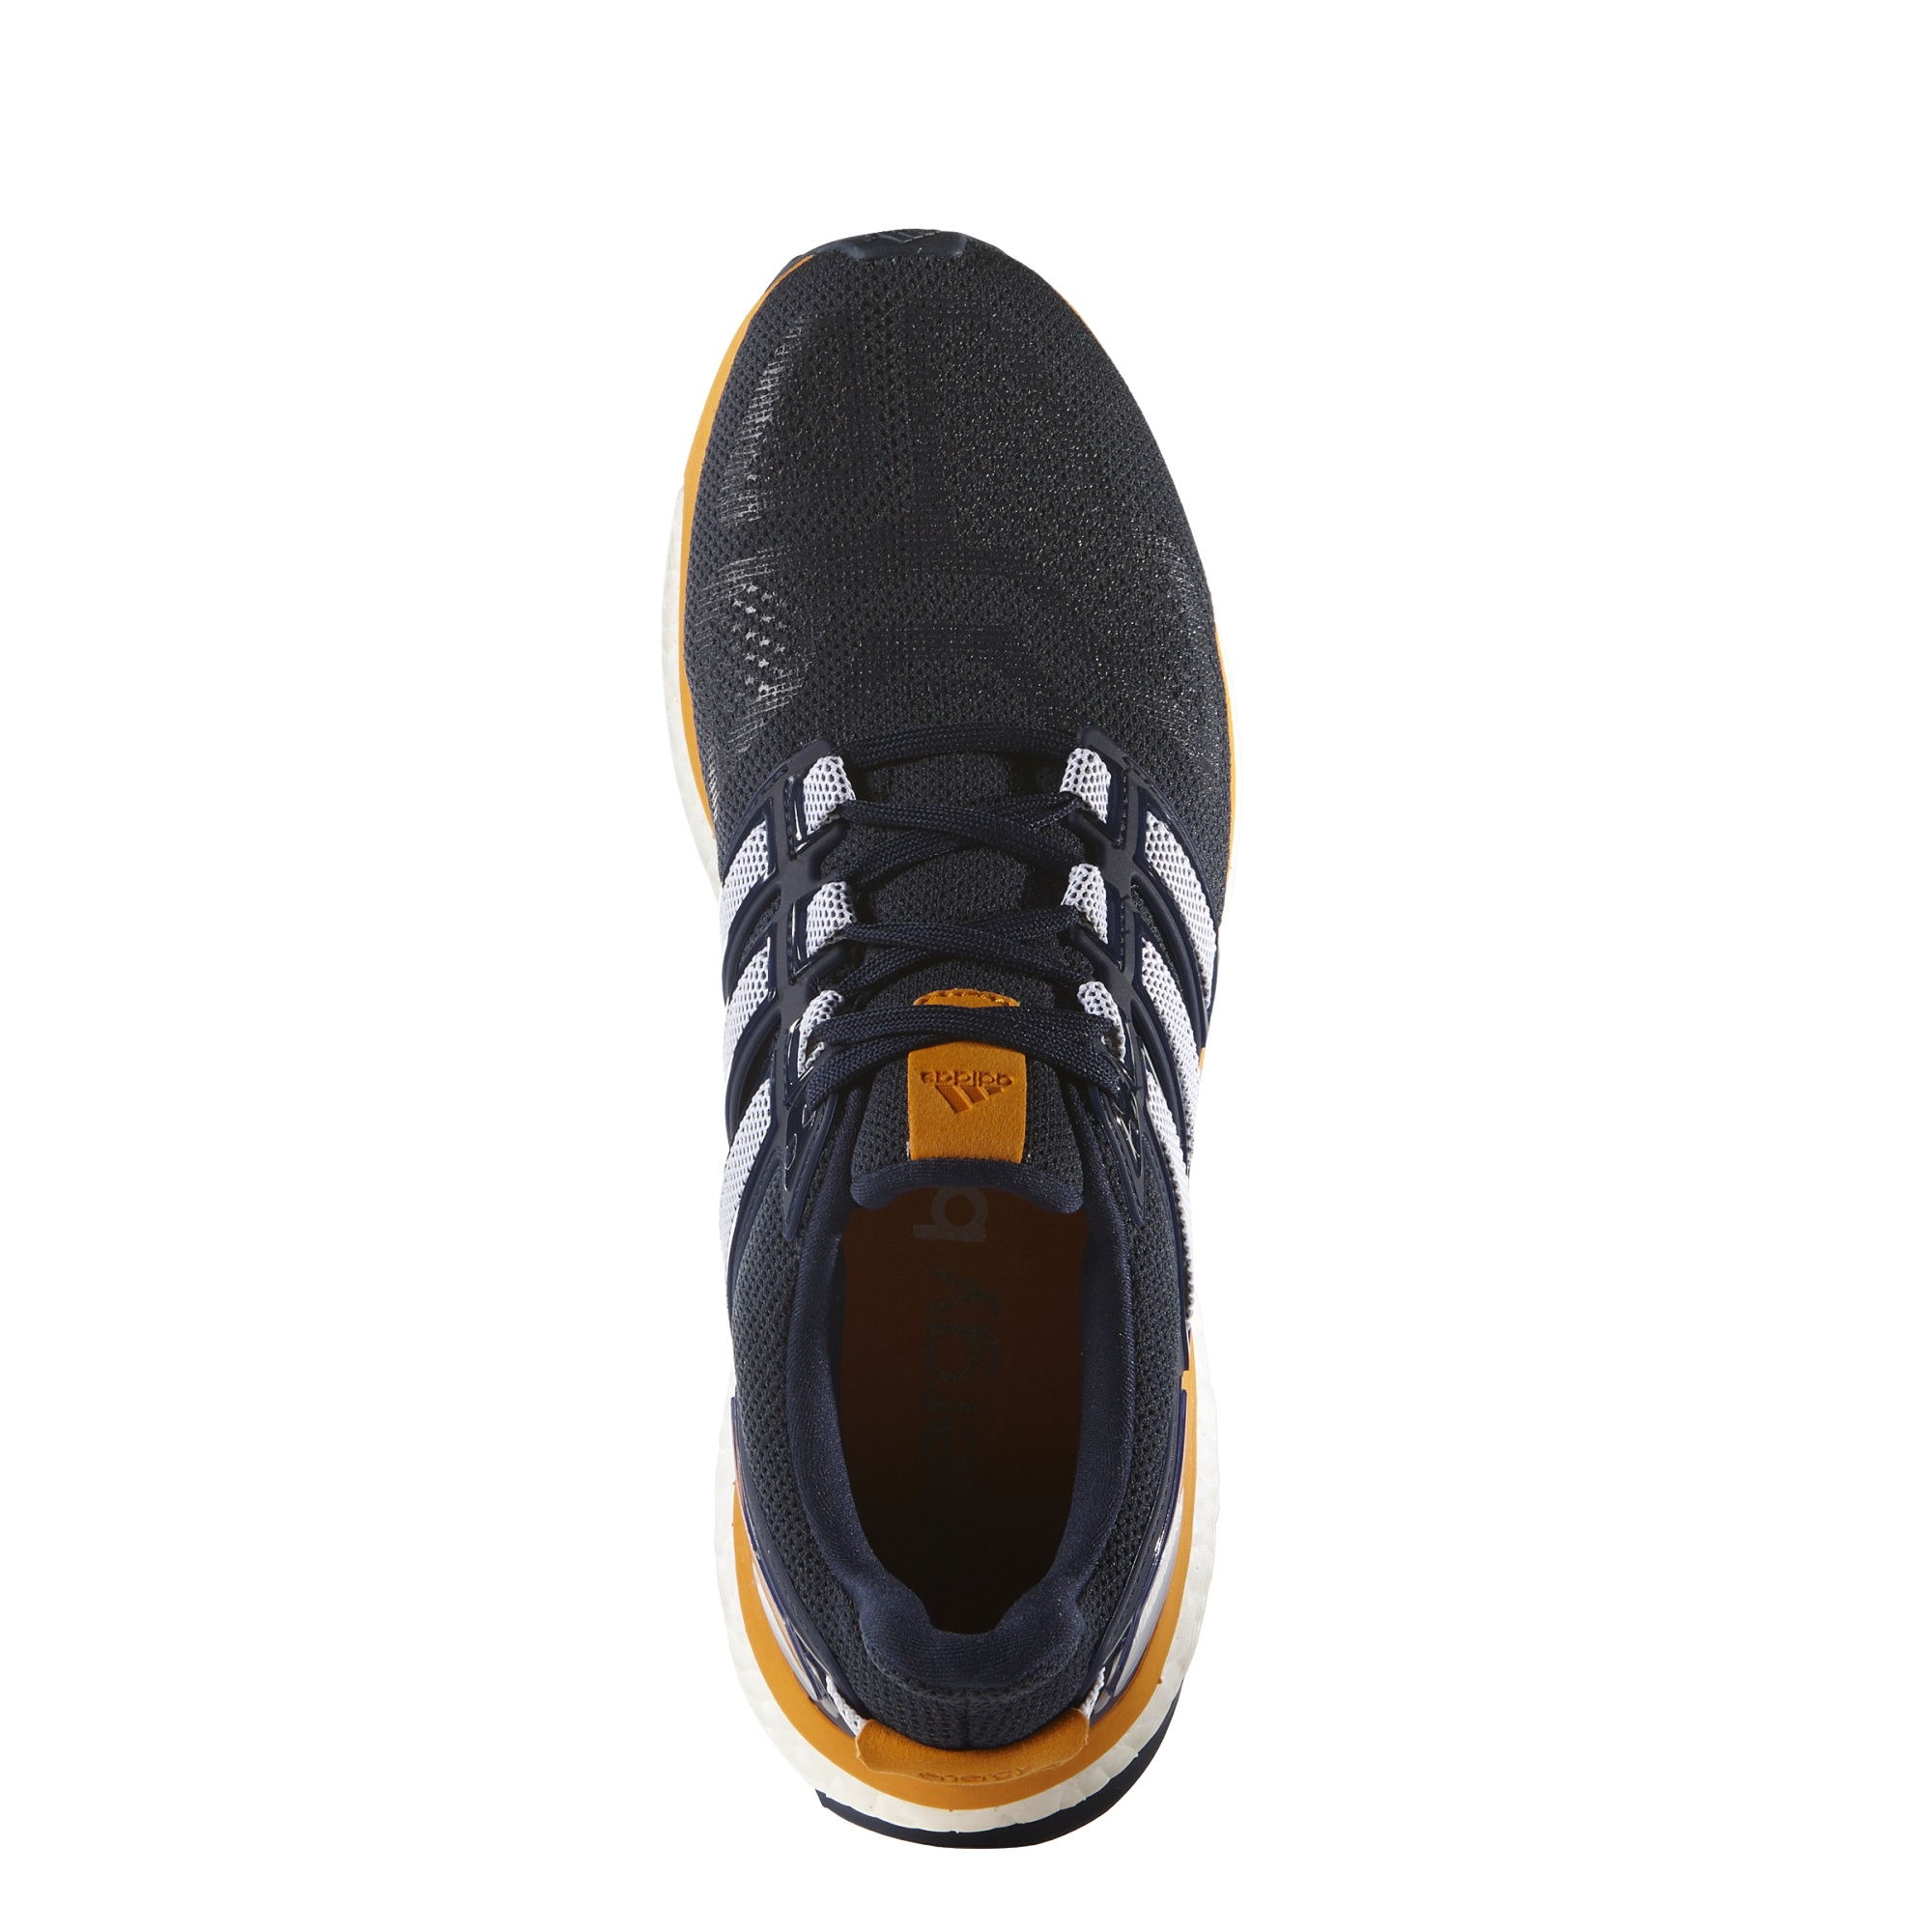 Adidas Energy Shoes, Cheap Adidas Energy Boost Sale 2017